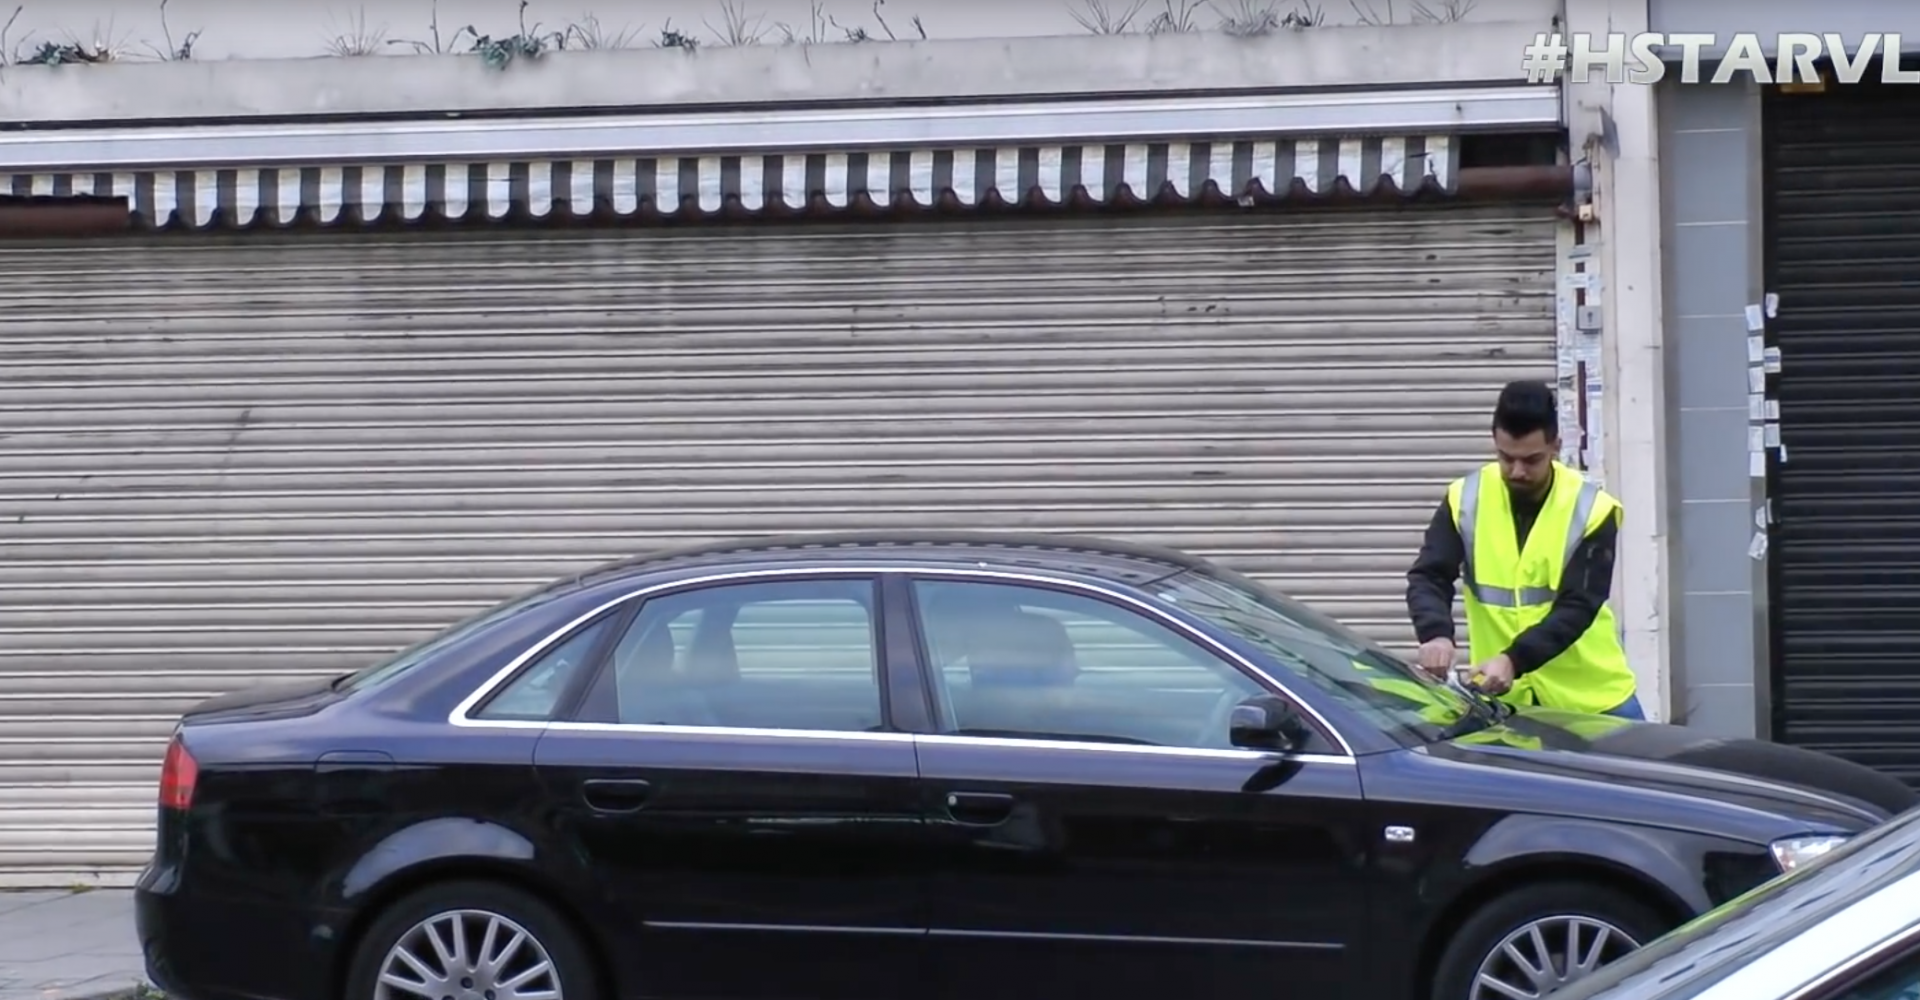 YouTuber Pranks Parkers With Penalty Ticket Joke